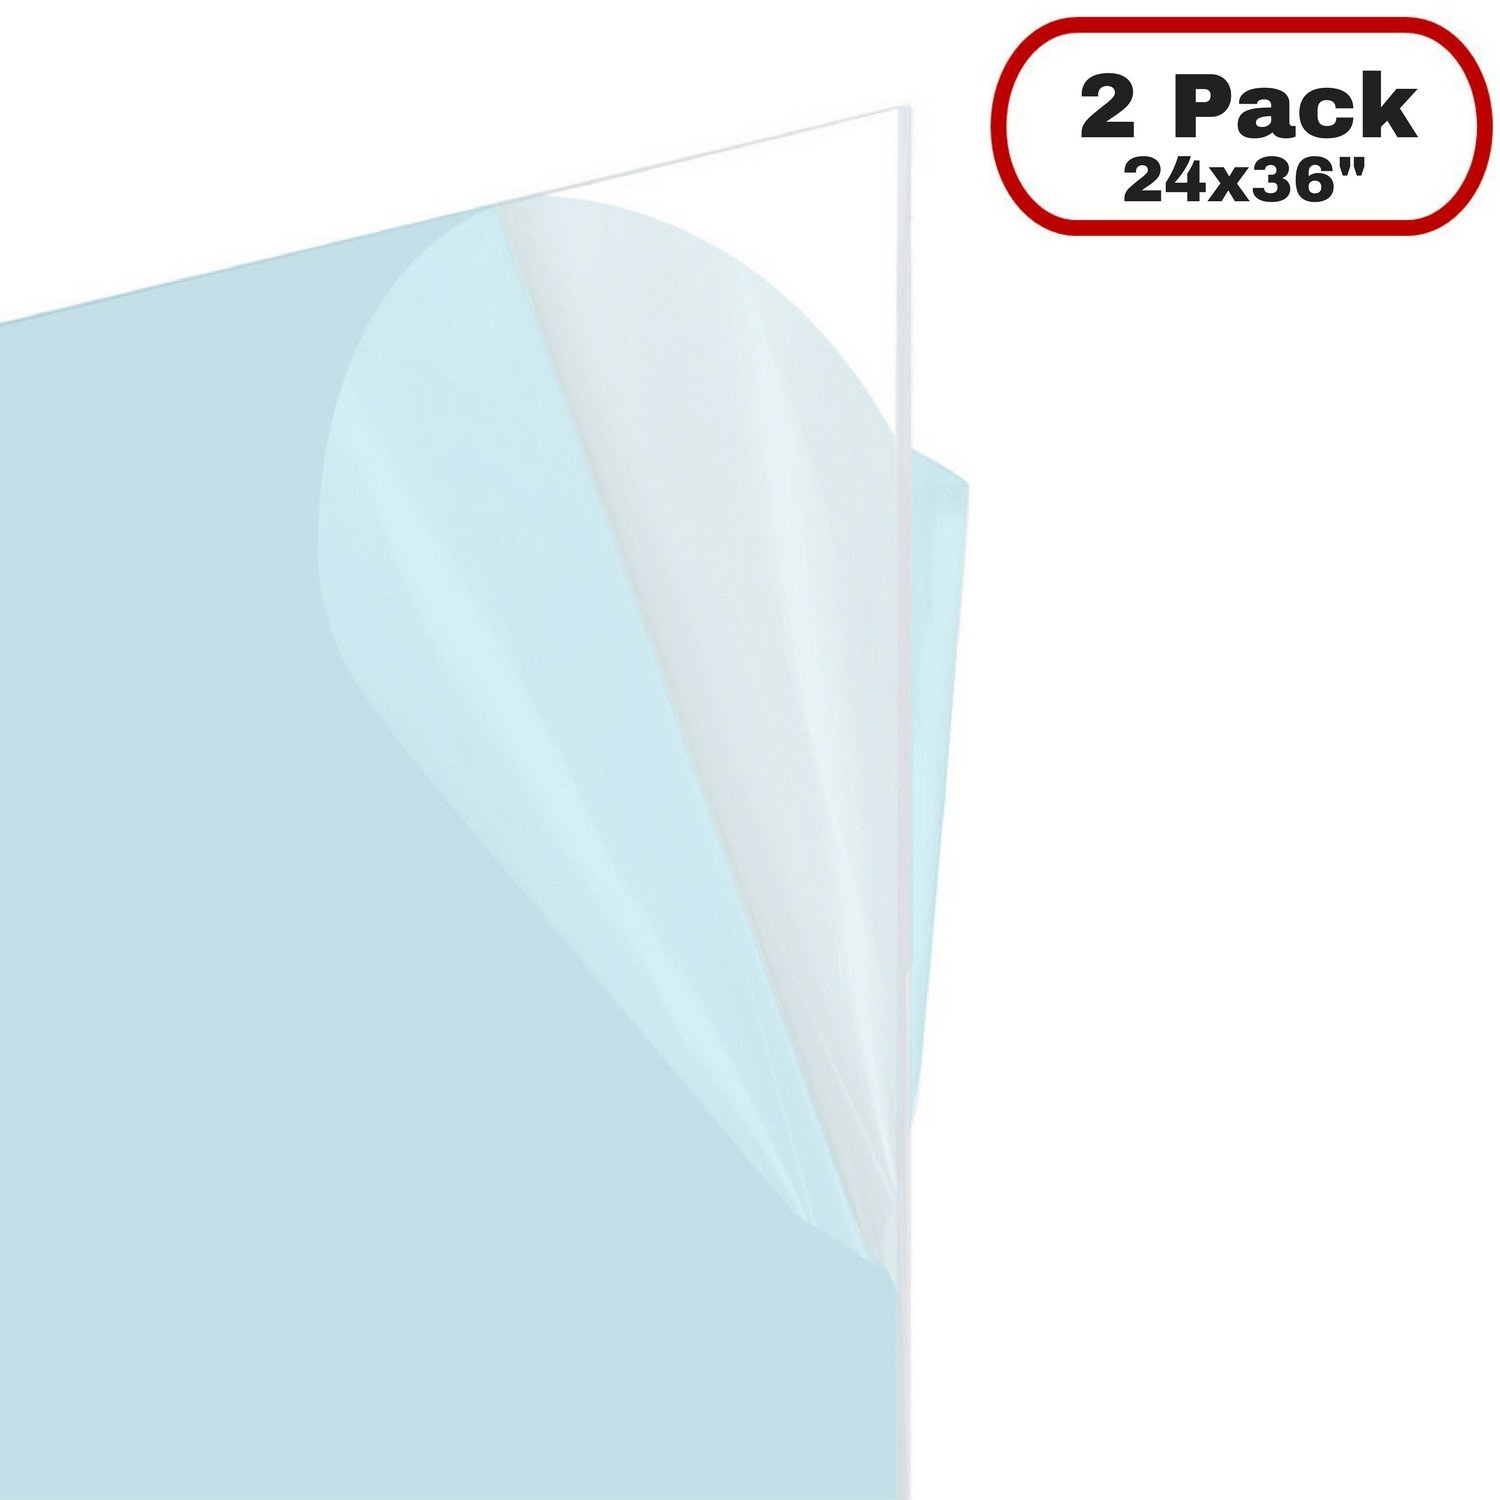 Icona Bay PET Replacement for Picture Frame Glass (24 x 36, 2 Pack) PET is Ideal Replacement Glass Material, Avoid Glass Shattering, Your Superior Replacement Picture Frame Glass has Arrived by Icona Bay